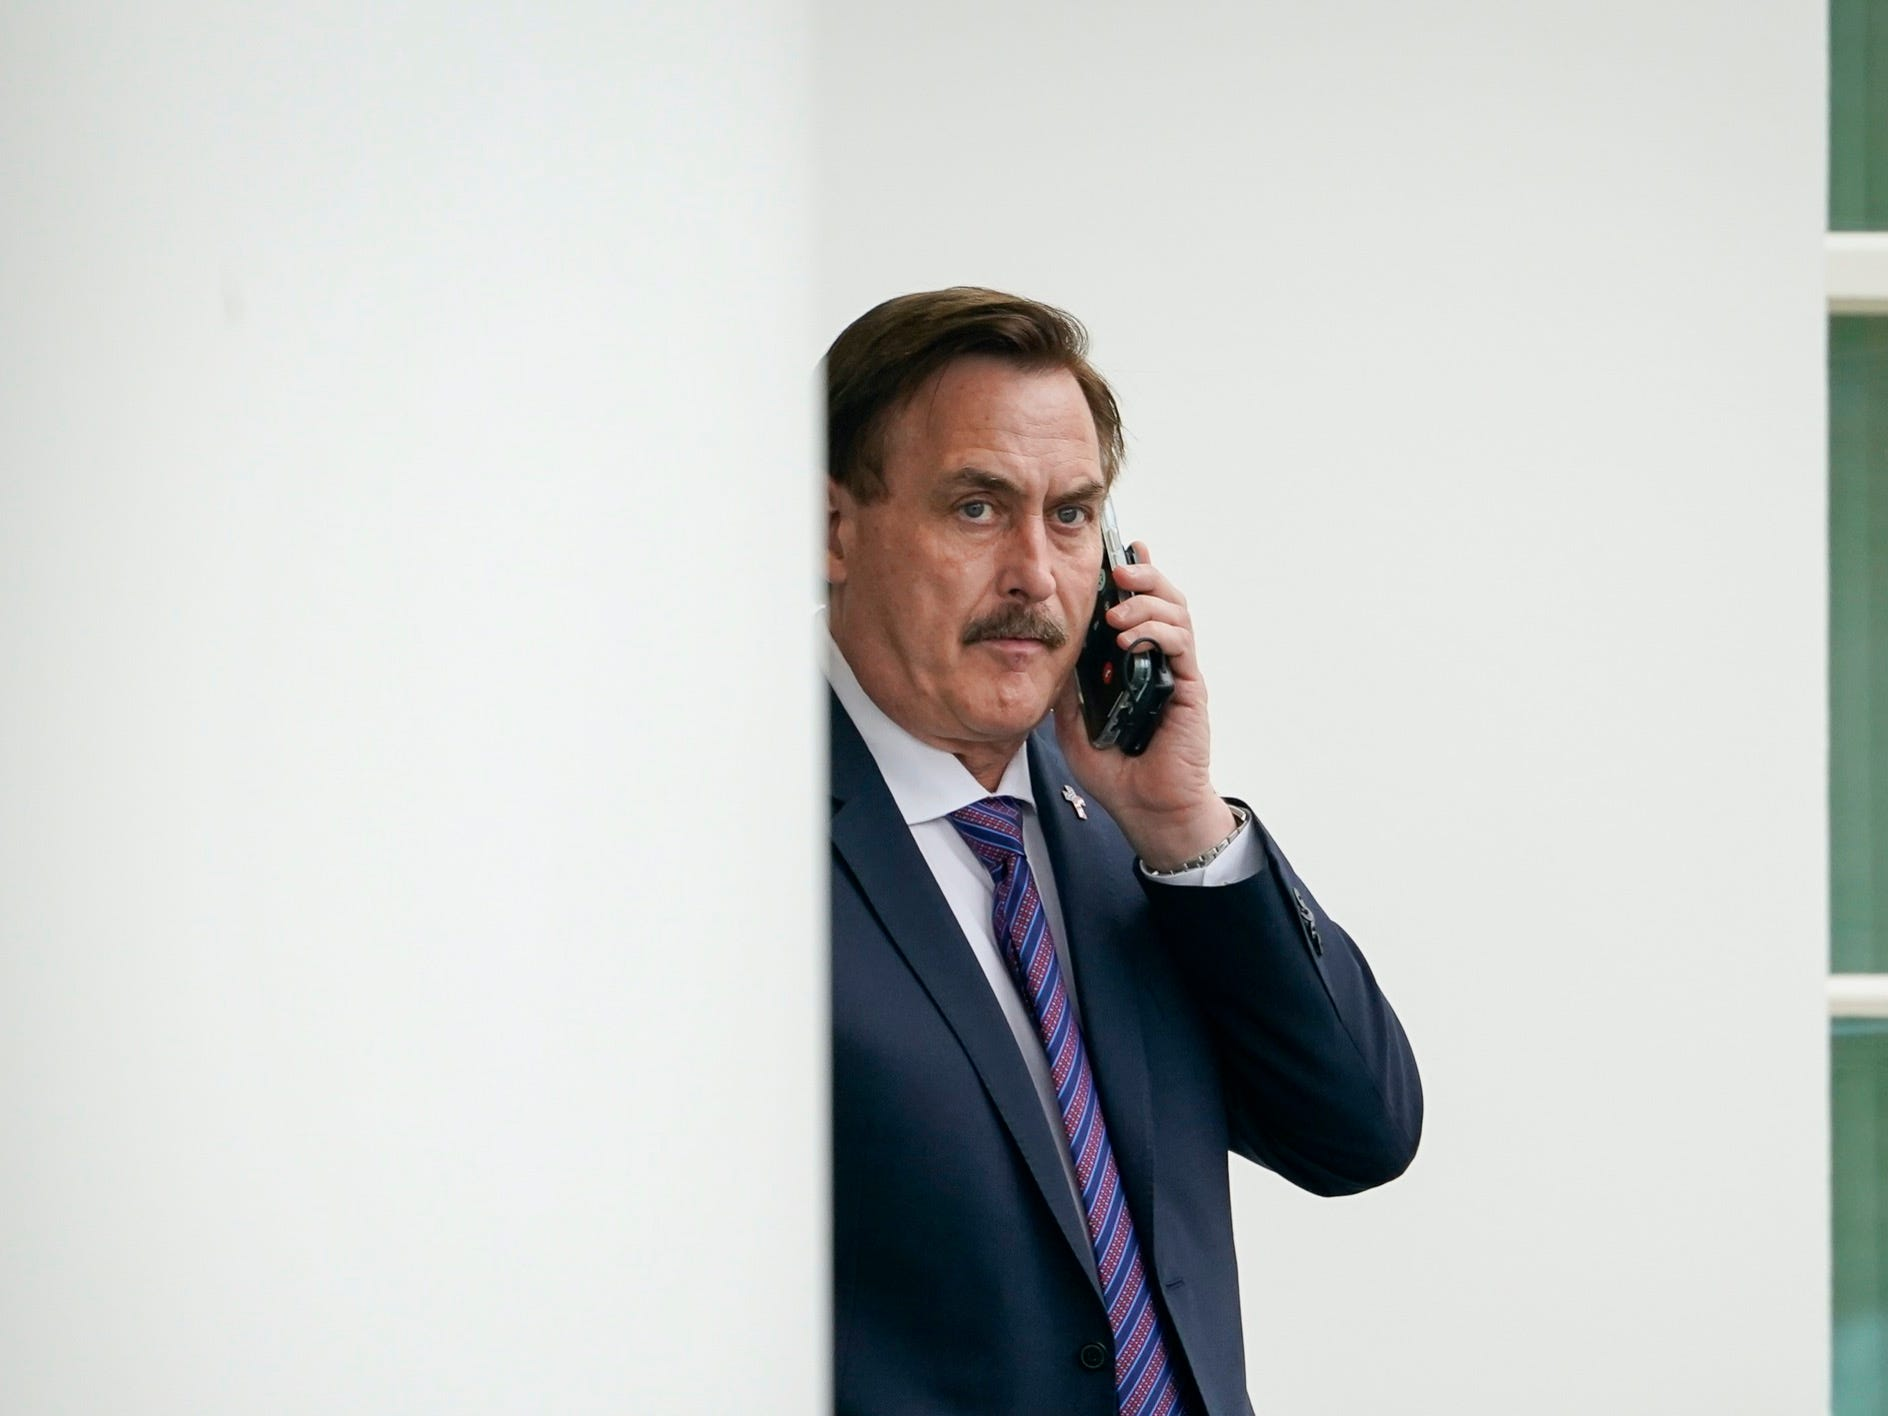 MyPillow's Mike Lindell is 'begging to be sued,' Dominion Vote casting Systems said